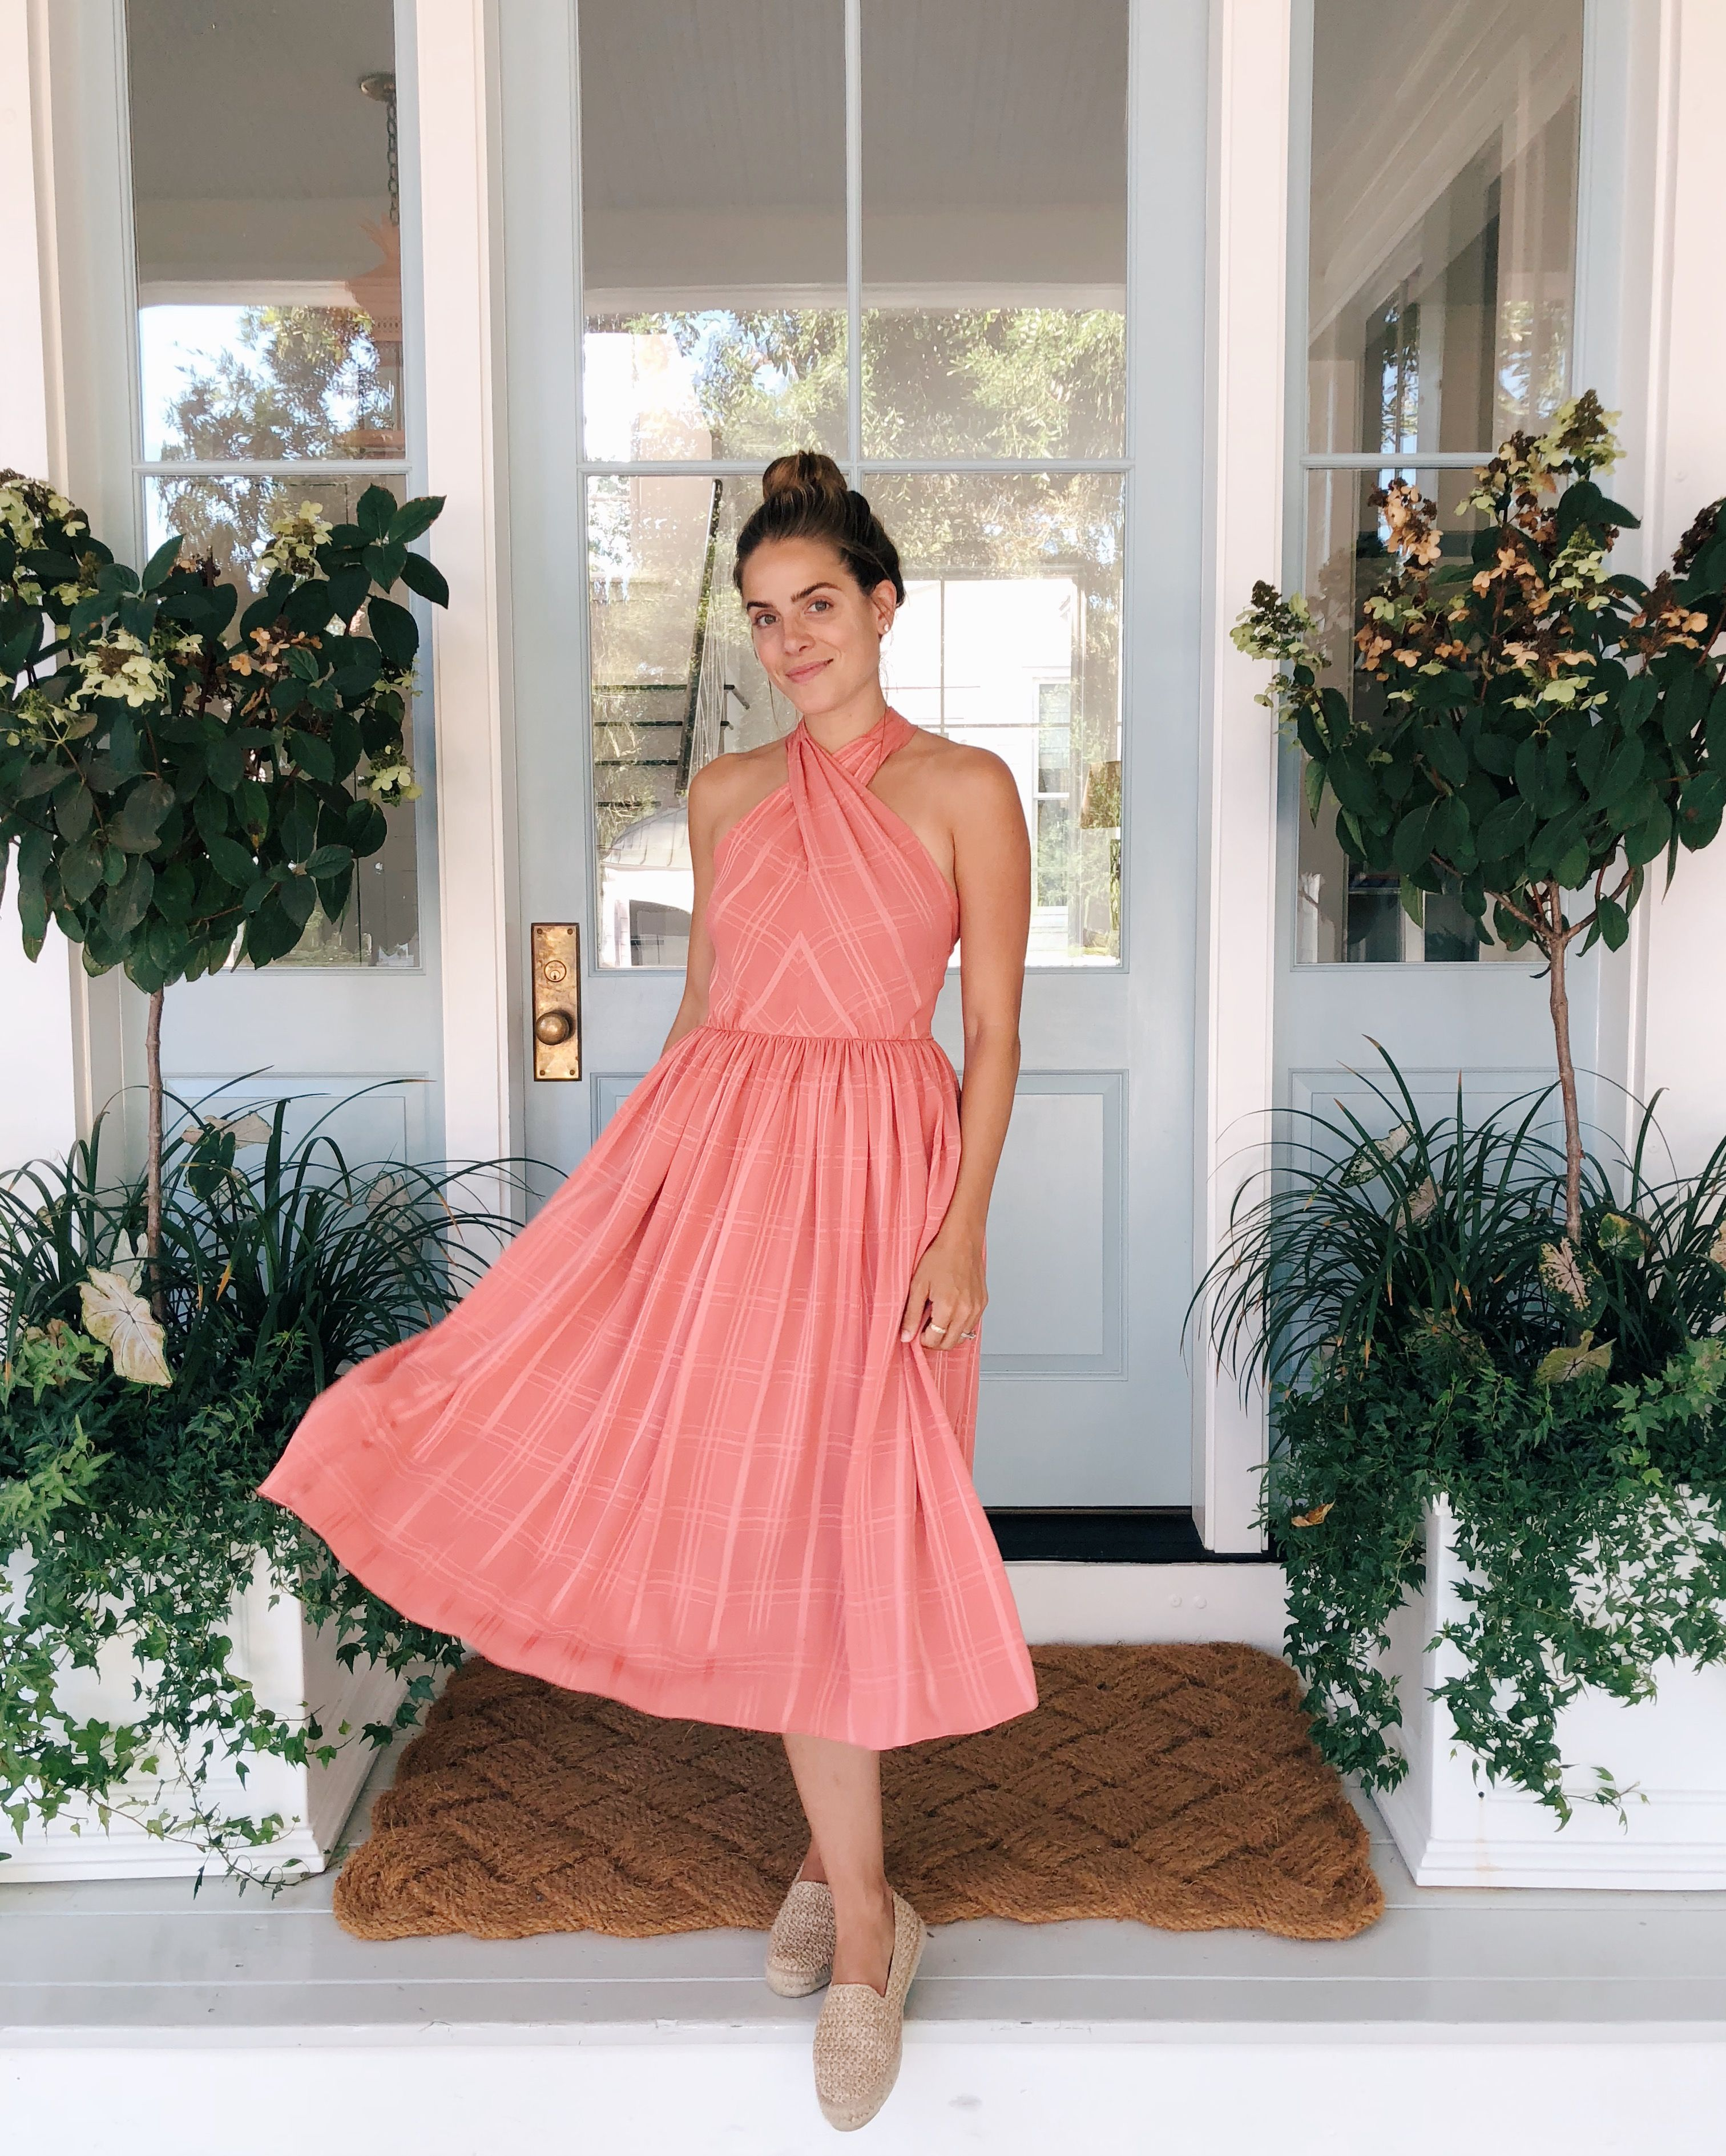 e8ba7bd90f69 Daily Look 7.5.18 featuring Julia wearing a Gal Meets Glam Collection Mia  dress with Manebi espadrilles for a perfect daytime look.